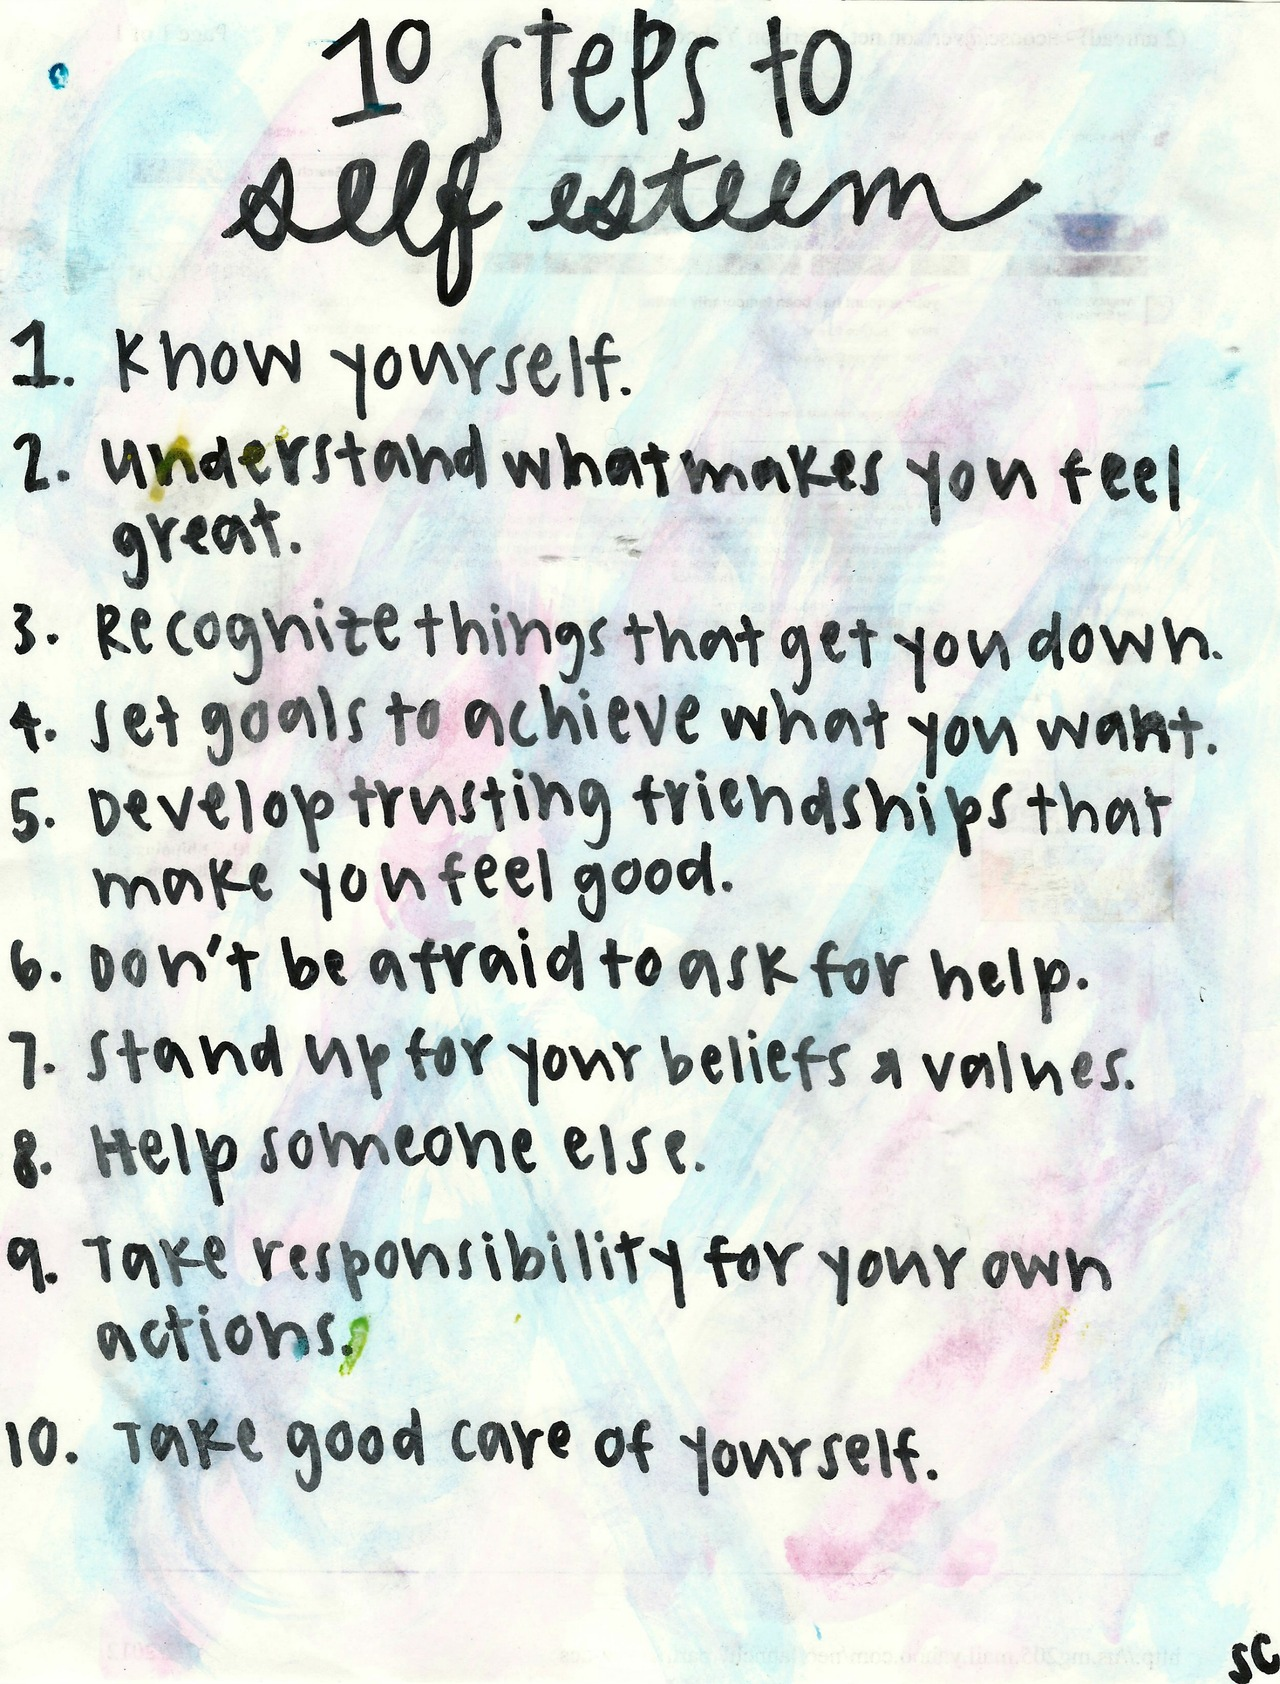 Quotes About Self Esteem 10 Steps To Self Esteem